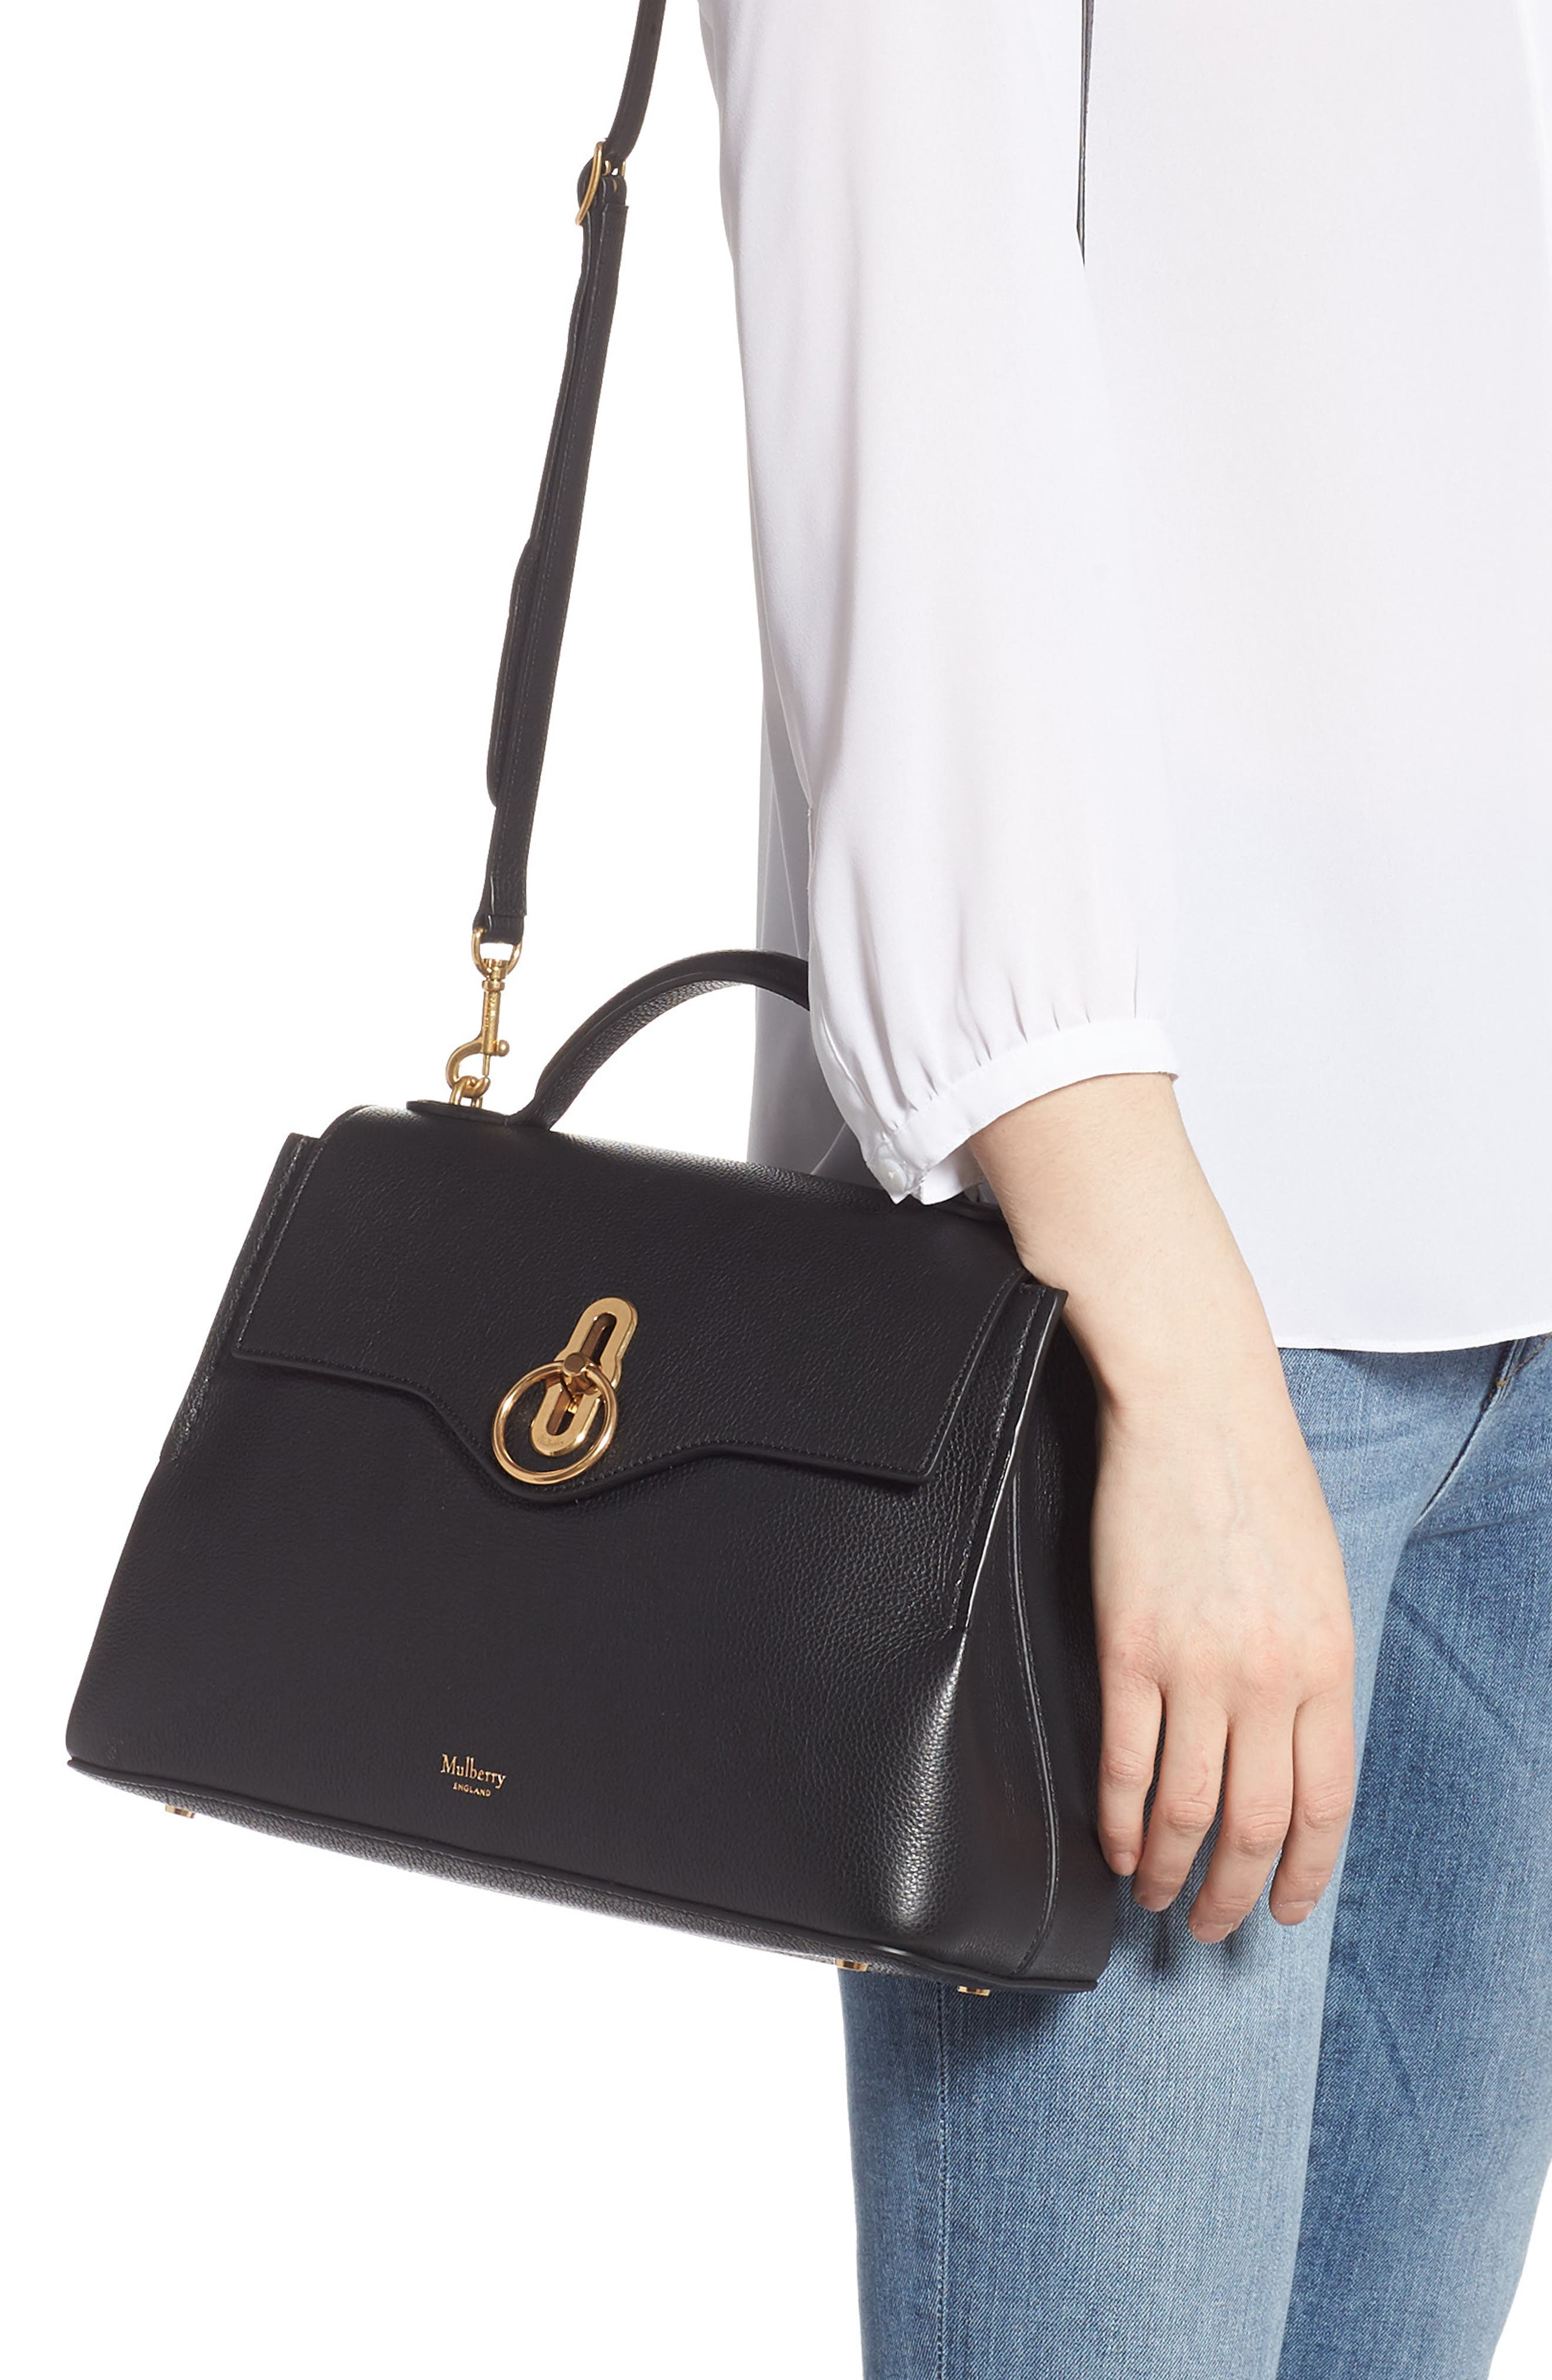 MULBERRY,                             Small Seaton Leather Top Handle Satchel,                             Alternate thumbnail 2, color,                             BLACK